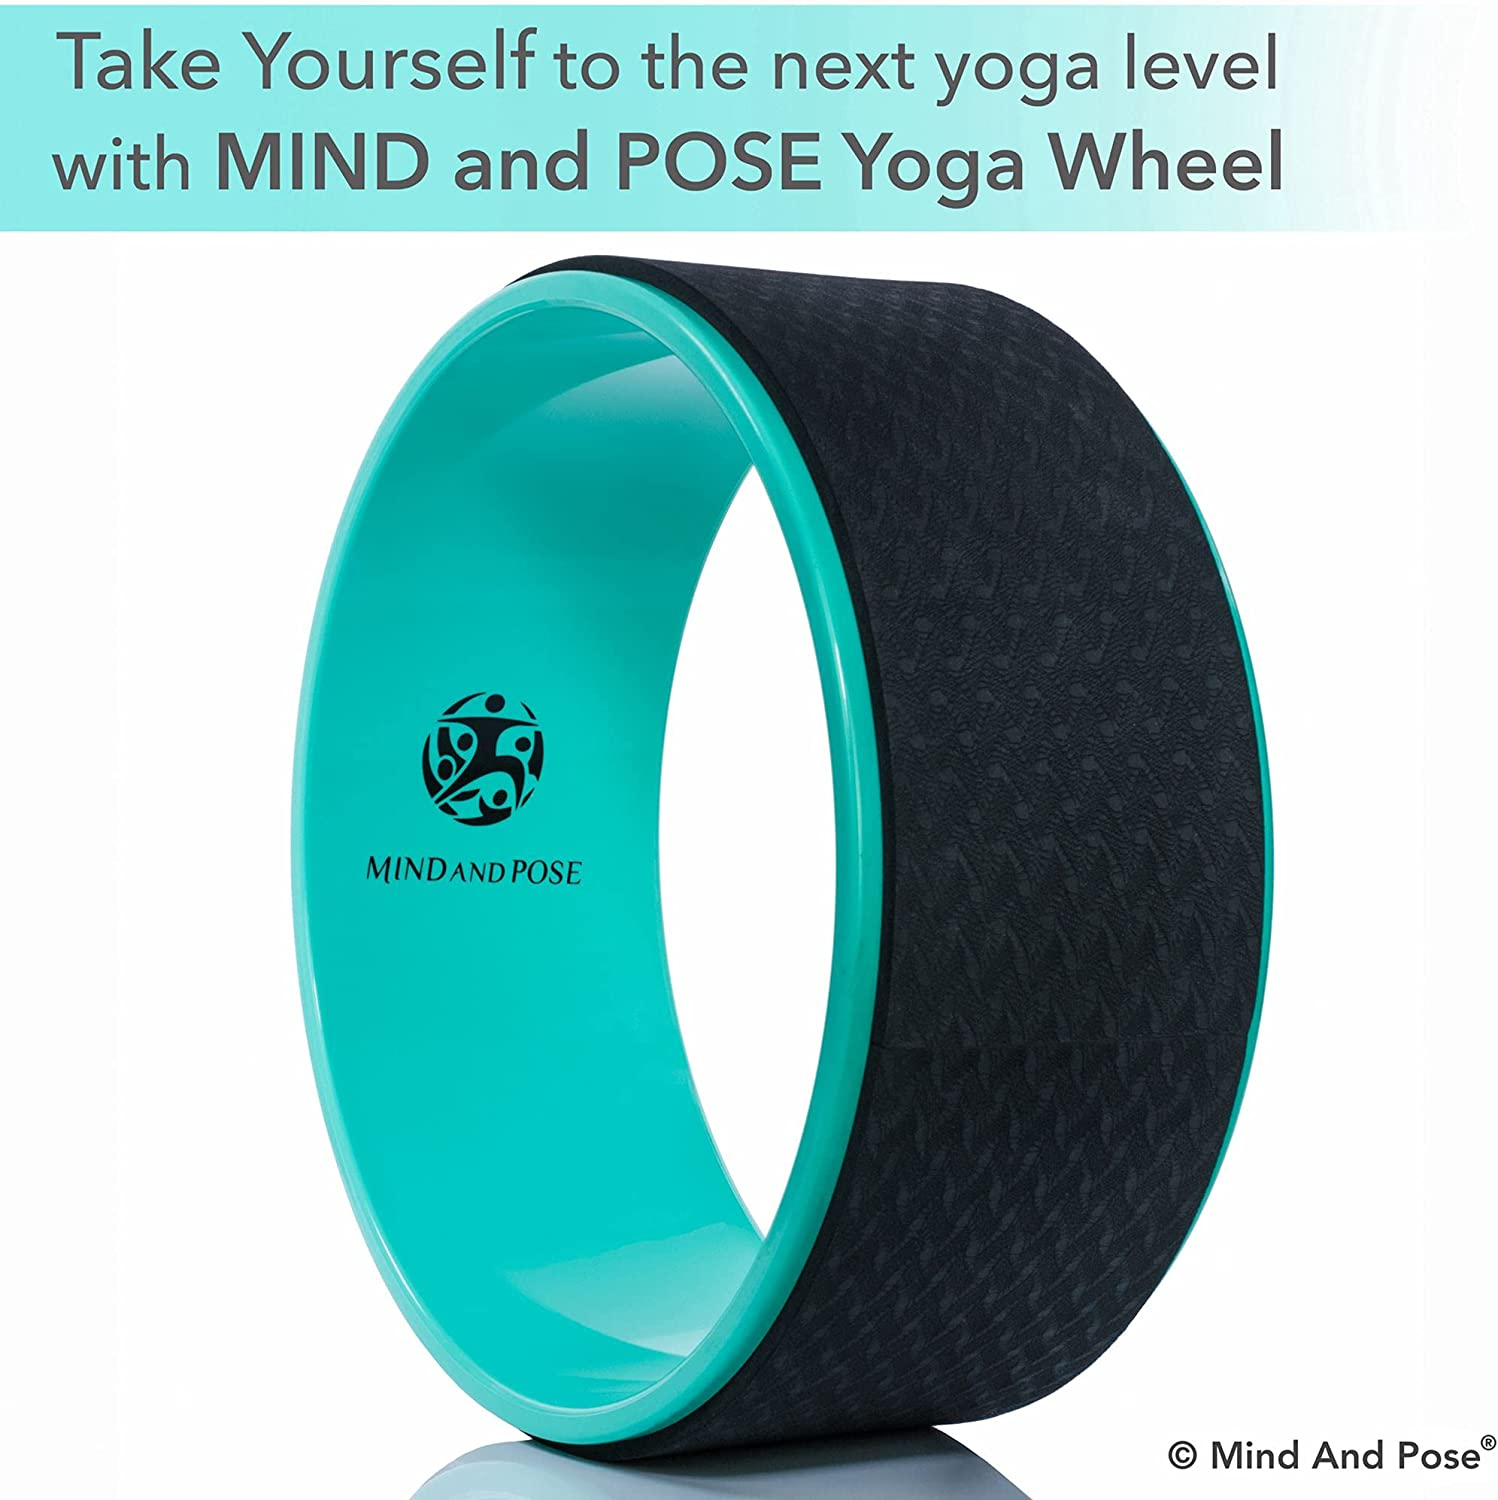 Mind And Pose Yoga Wheel Dharma Back Wheel   Aids with Stretching, Reduces  Back Pain, Improves Balance and Backbend, Increases Flexibility, Massage ...